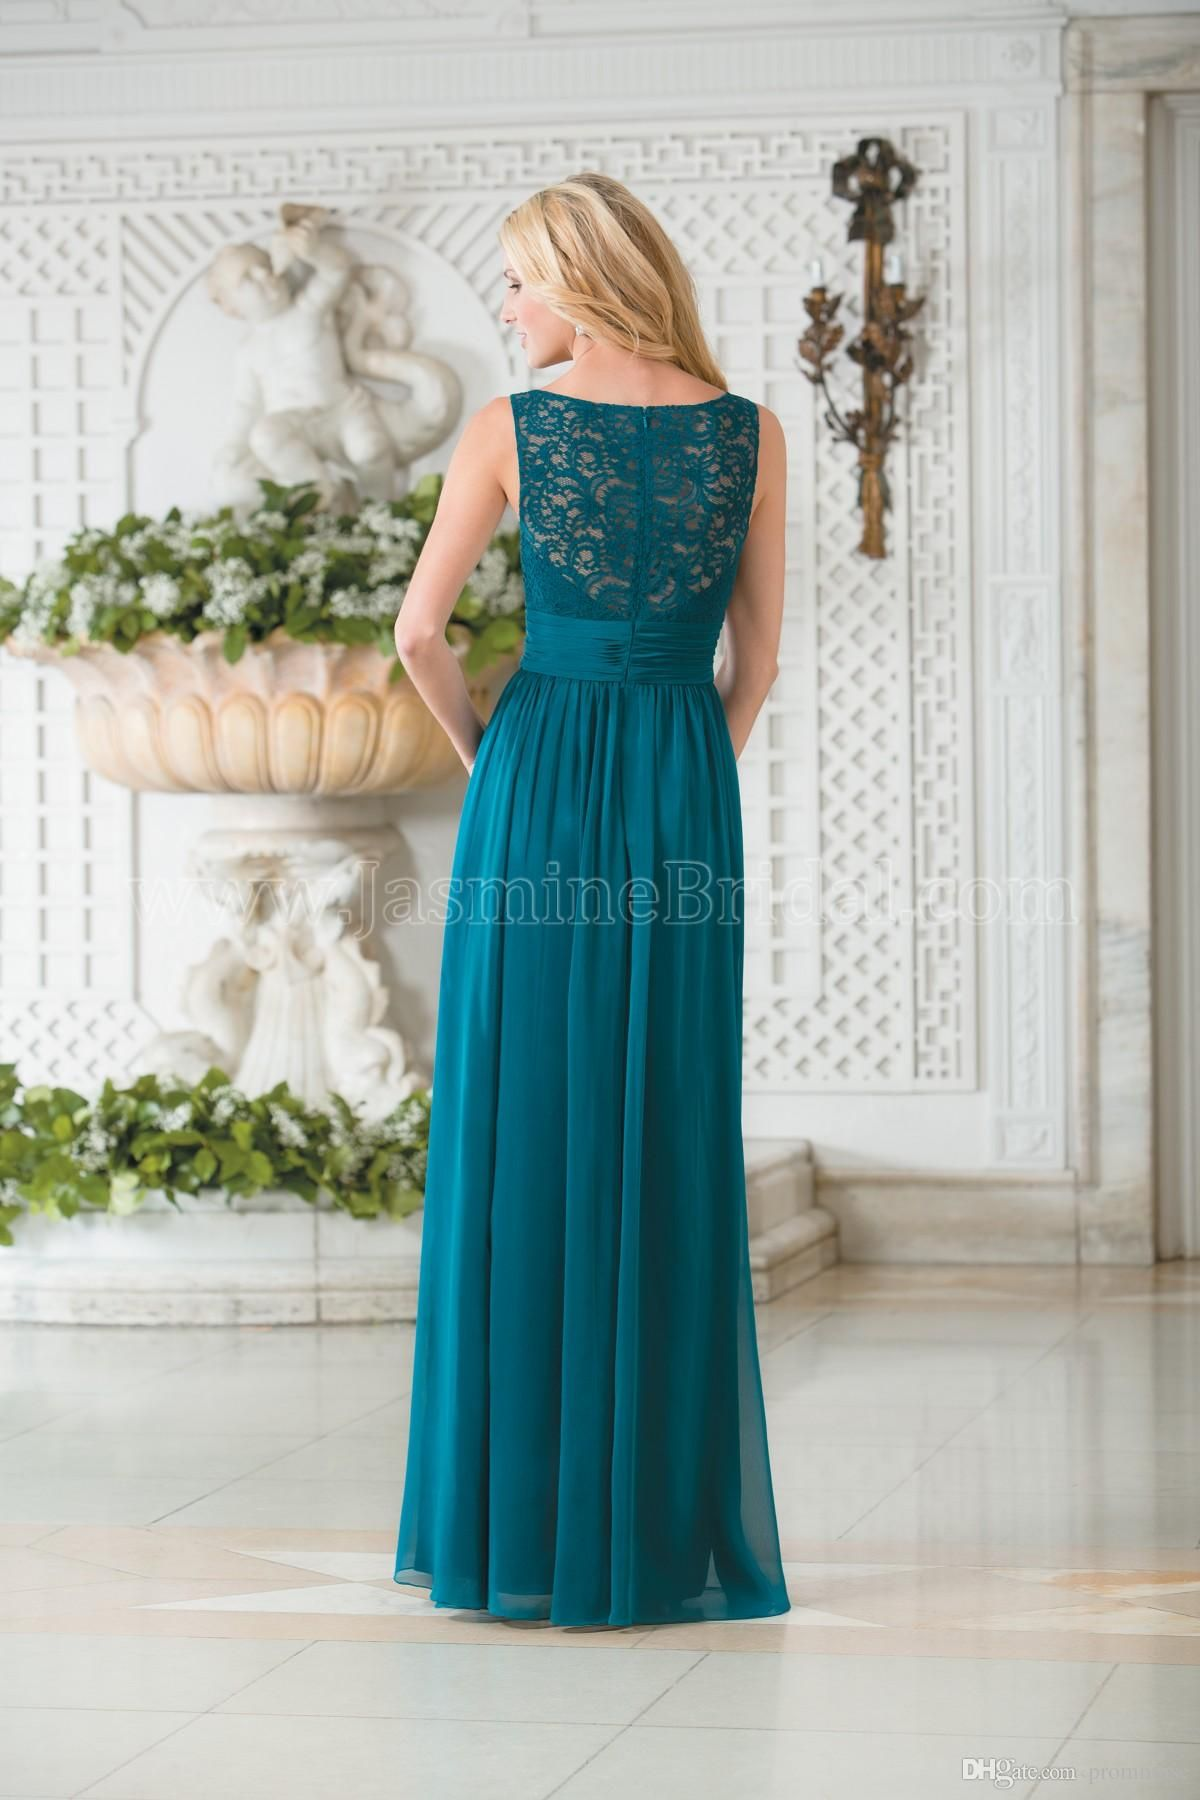 Floor to the Teal Dresses